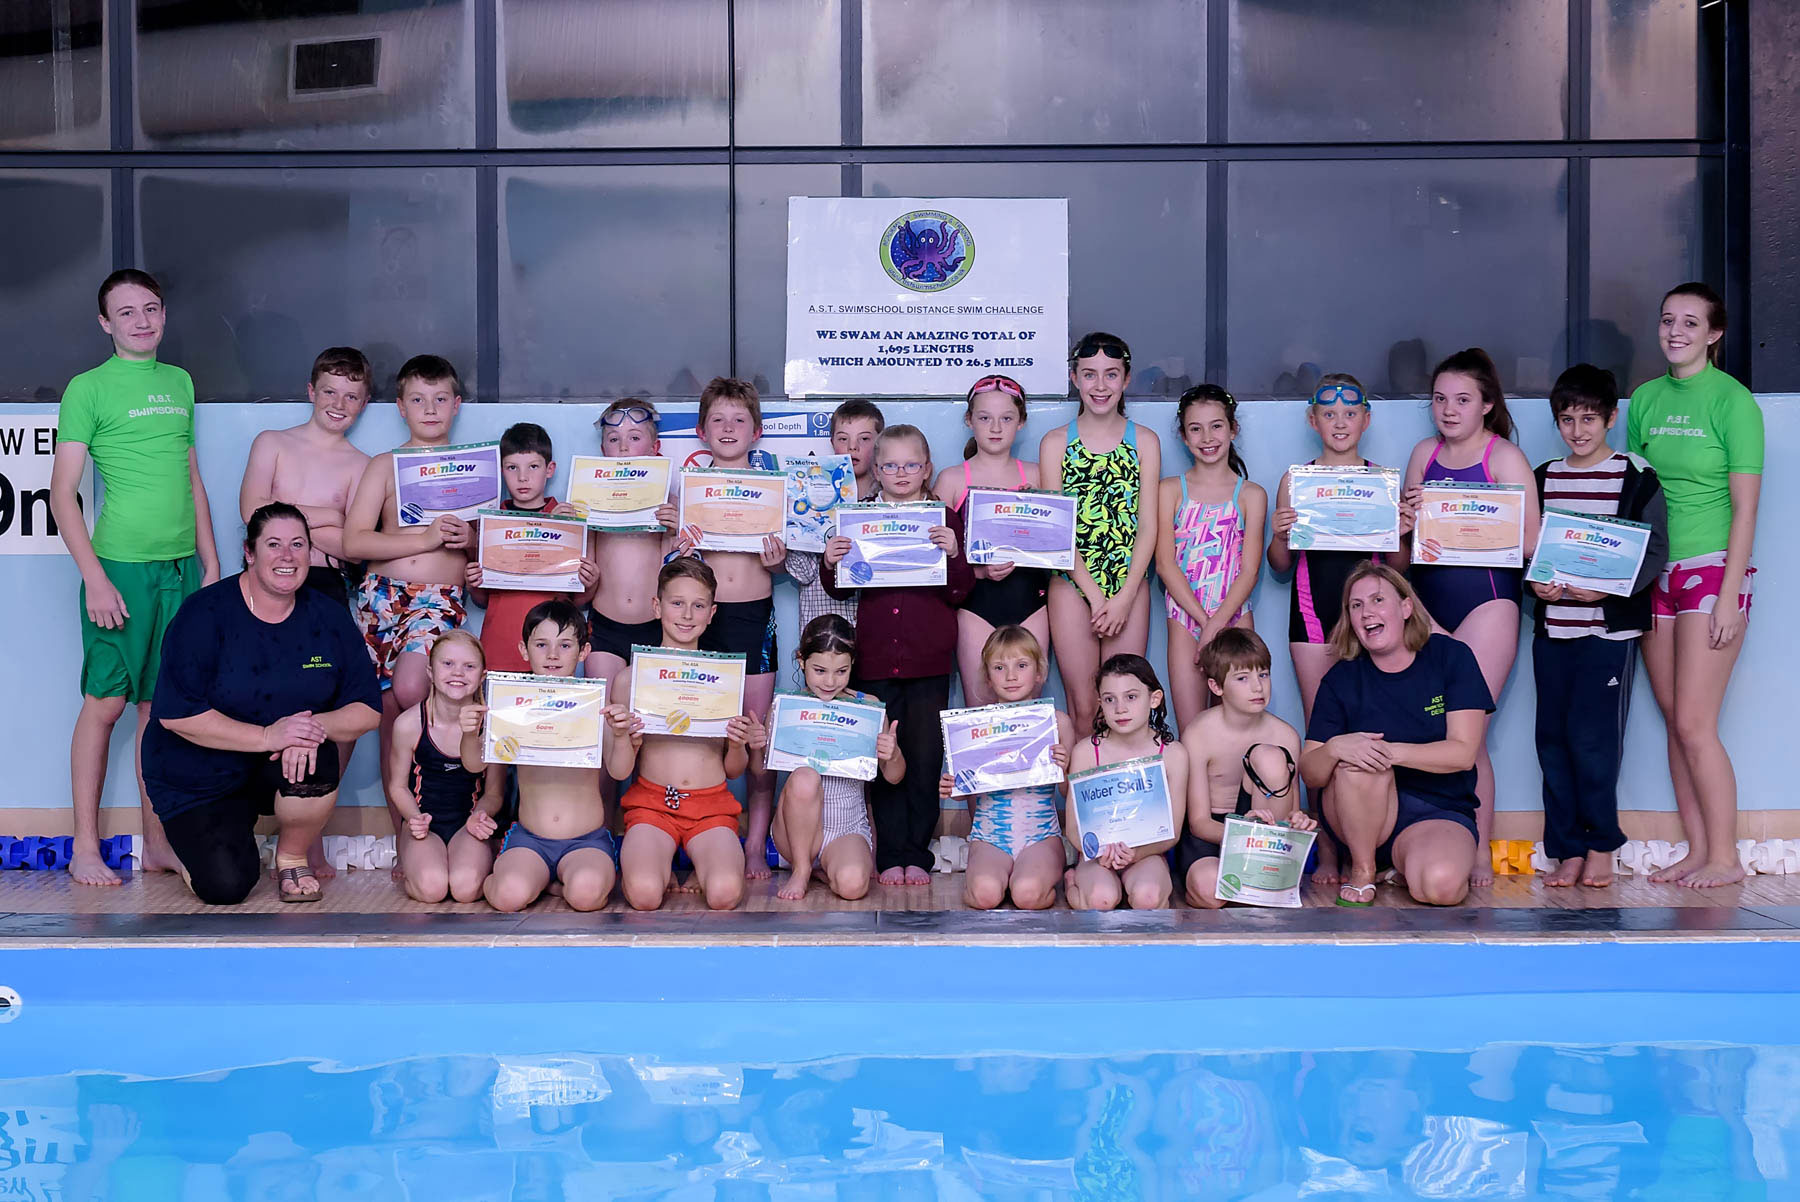 AST Swimschool - Distance Challenge